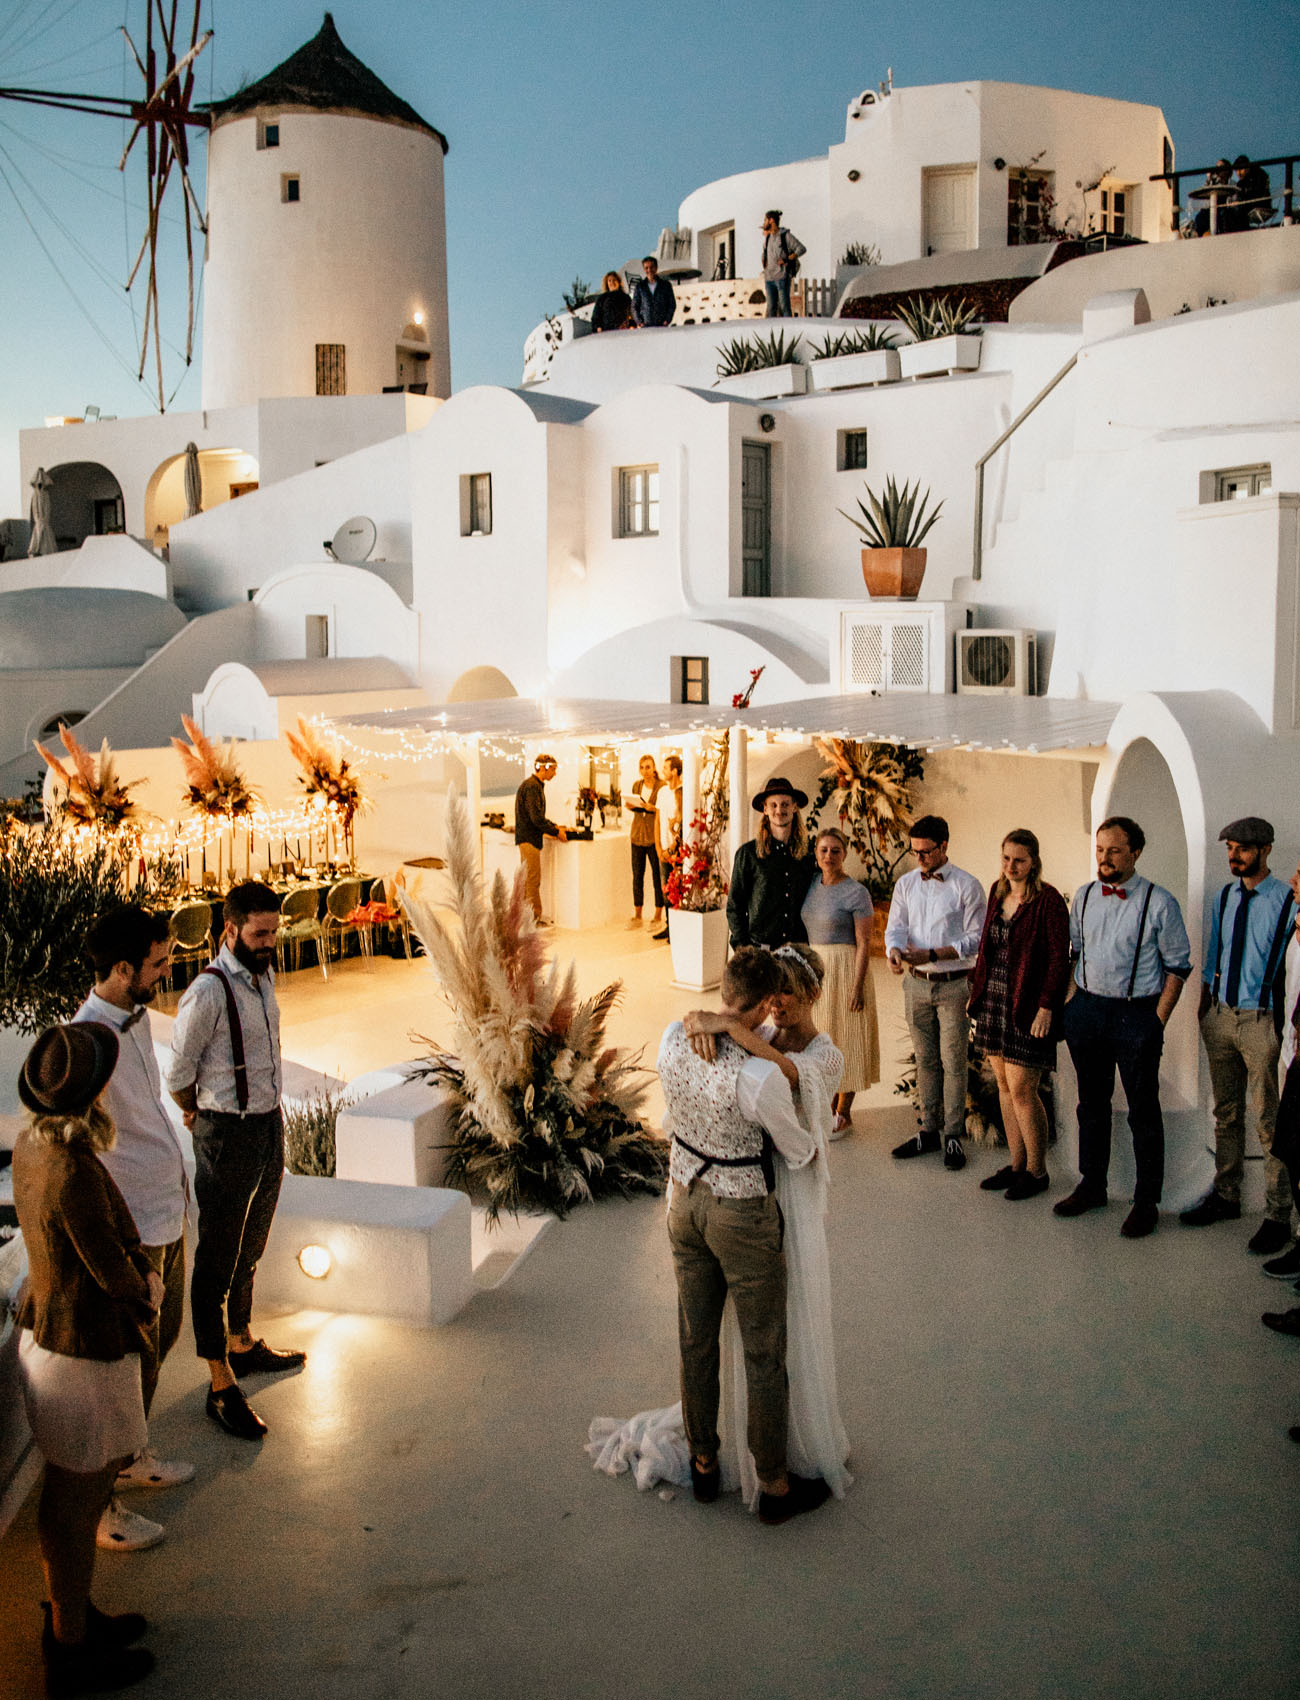 What a beautiful and cozy wedding in an amazing island location